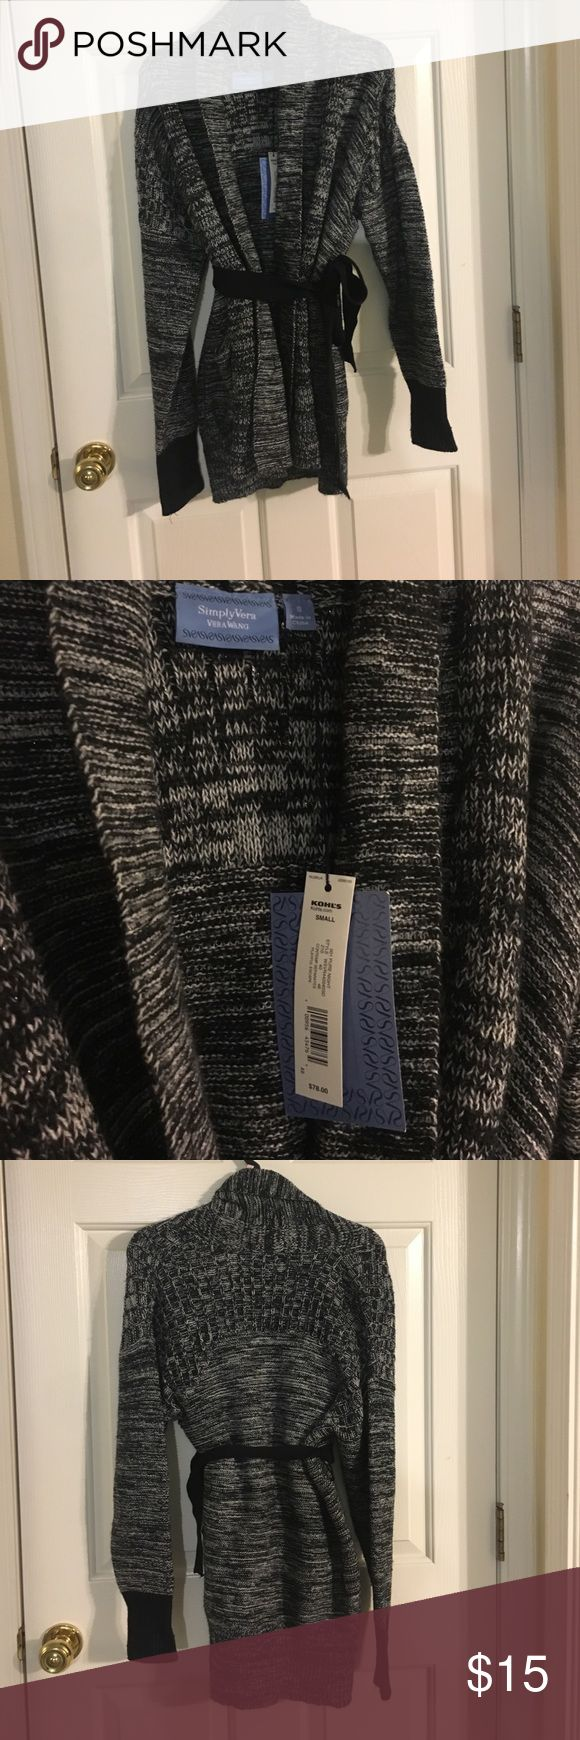 cardigan belted with pockets brand new, retails for $78 Simply Vera Vera Wang Sweaters Cardigans